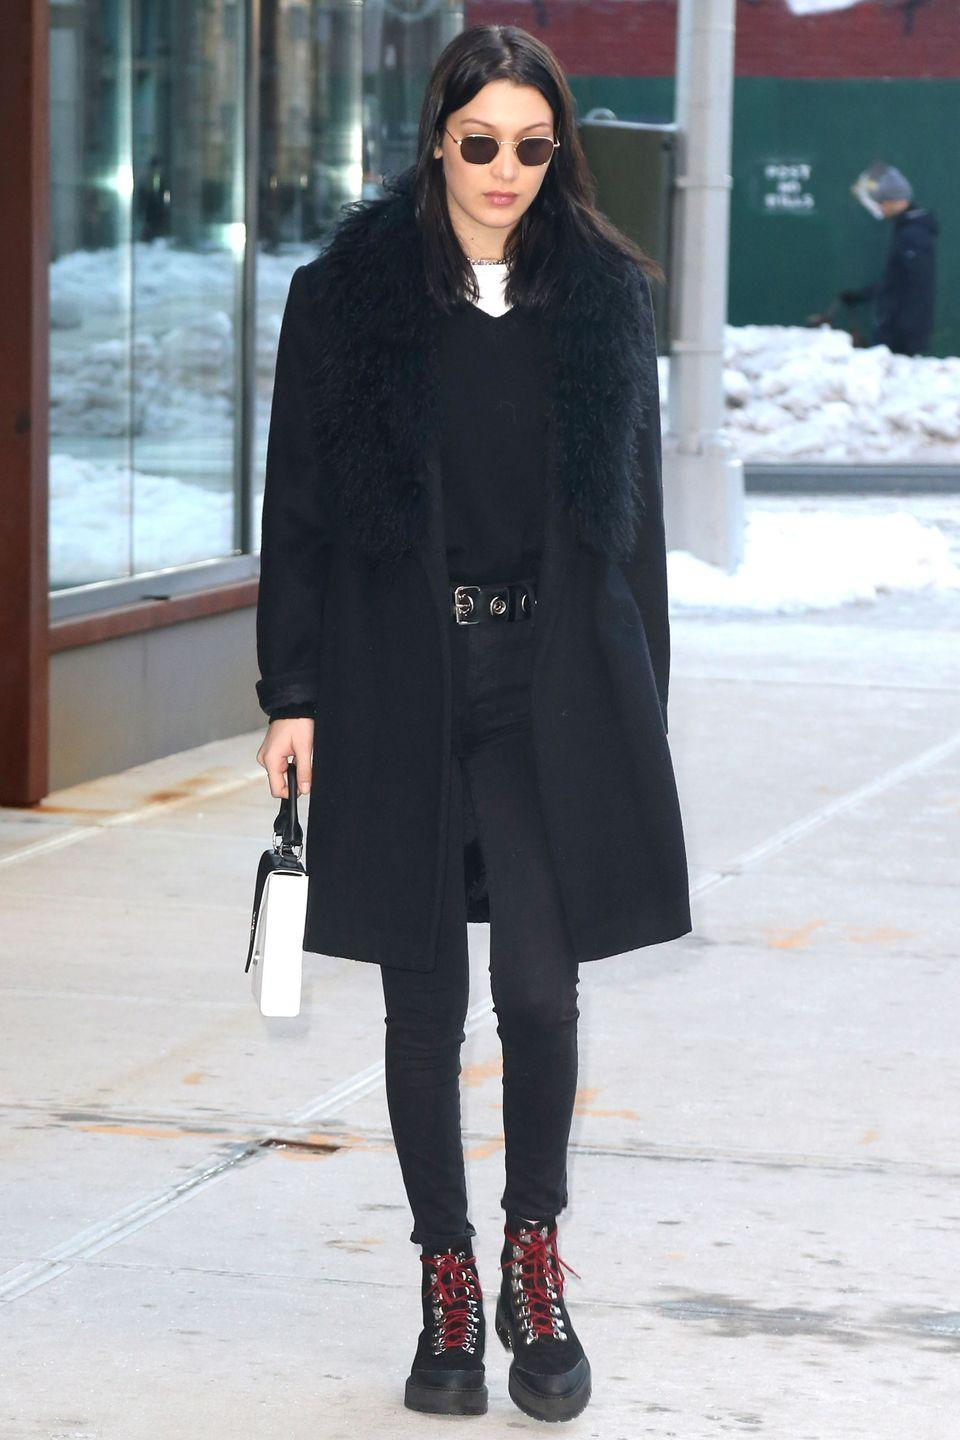 <p>In a black fur coat, skinny jeans, lace-up boots, v-neck sweater, white tee and Krewe rounded sunglasses while out in New York.</p>